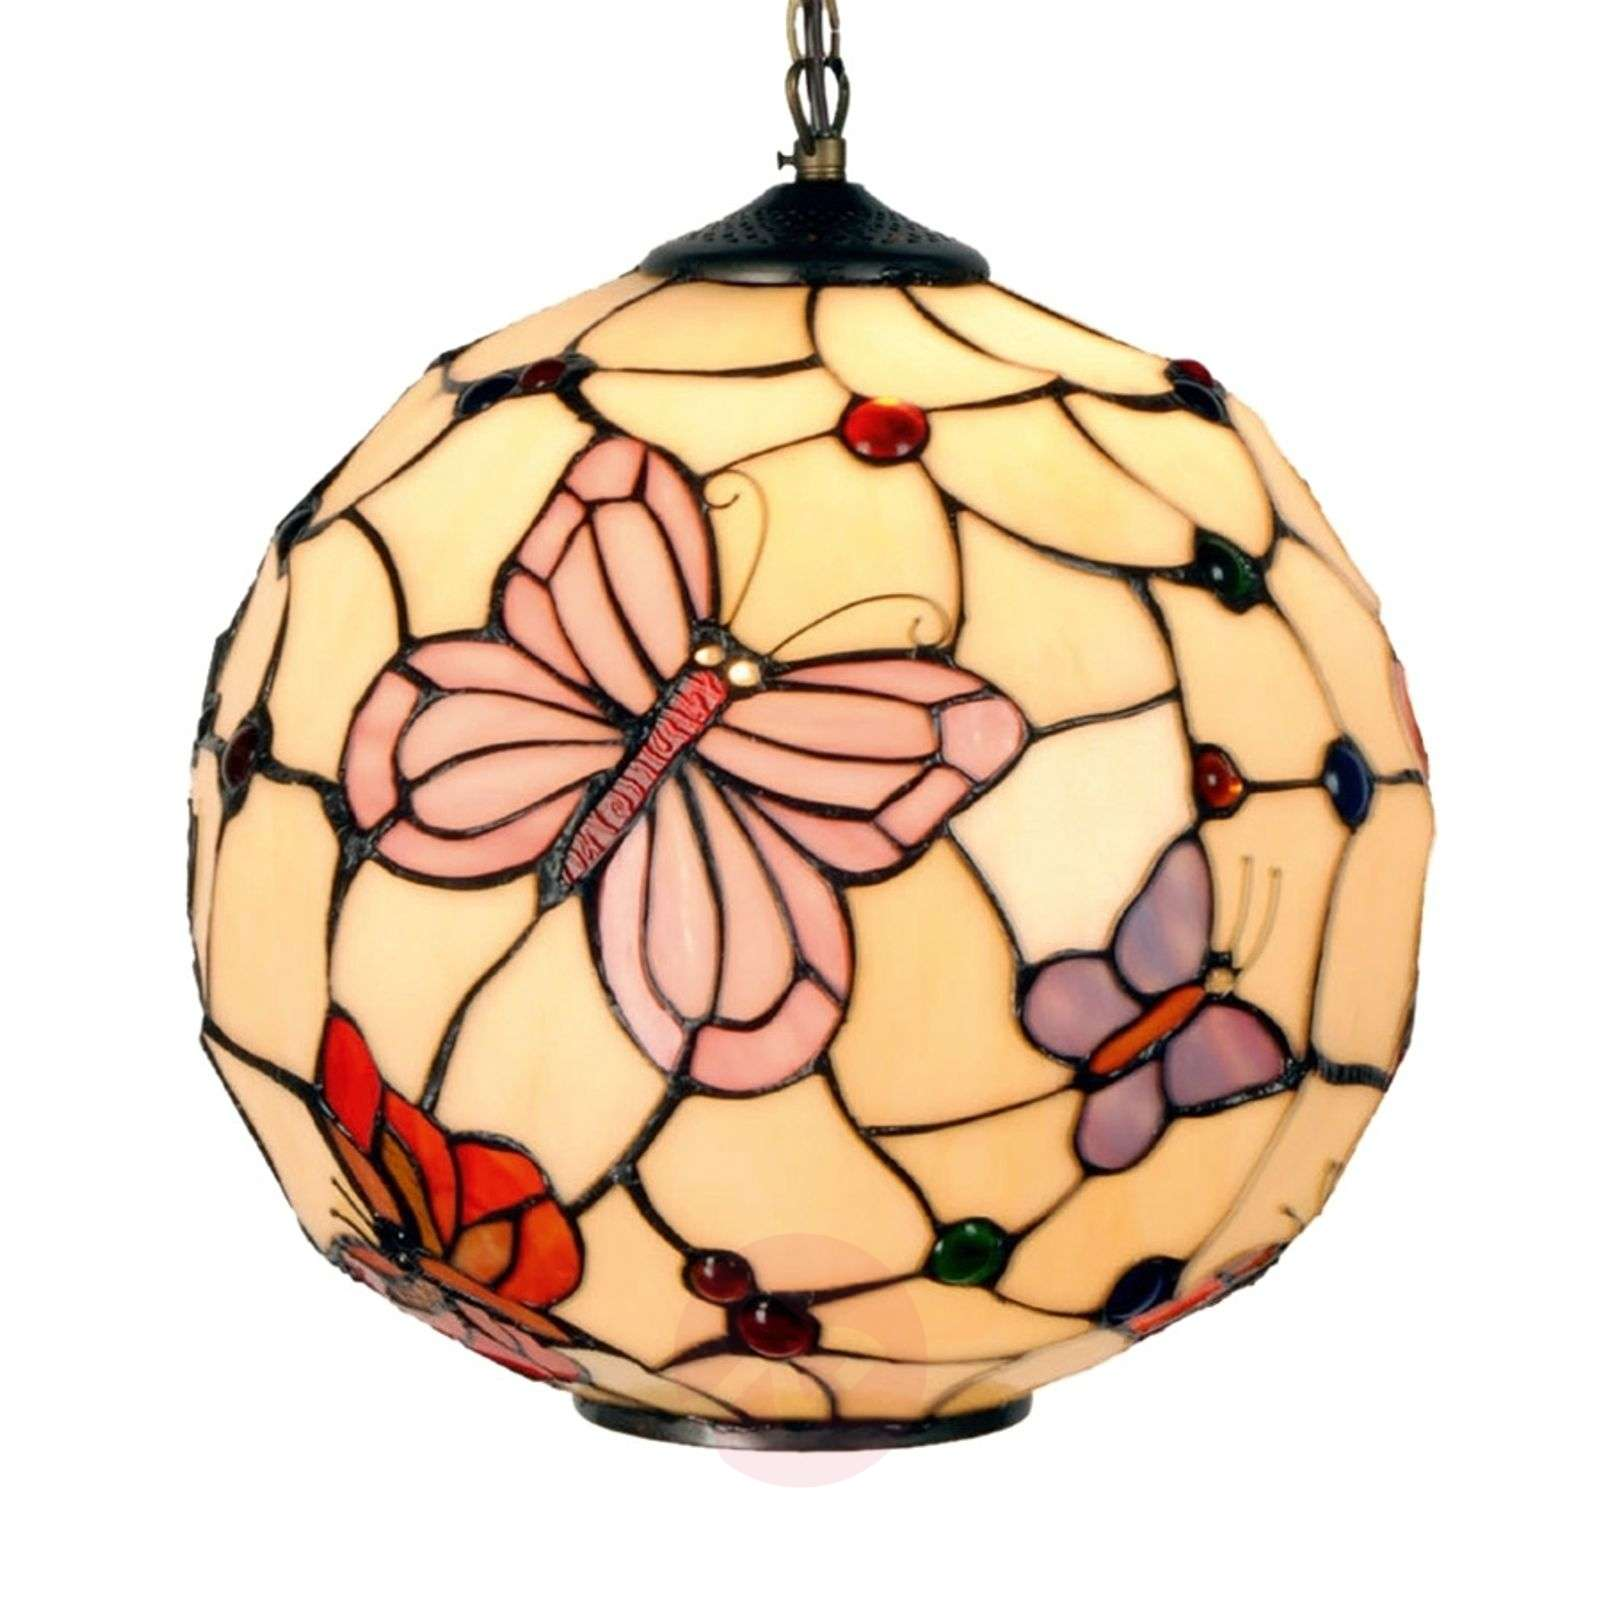 Suspension Rosy Butterfly style Tiffany-6064008-01